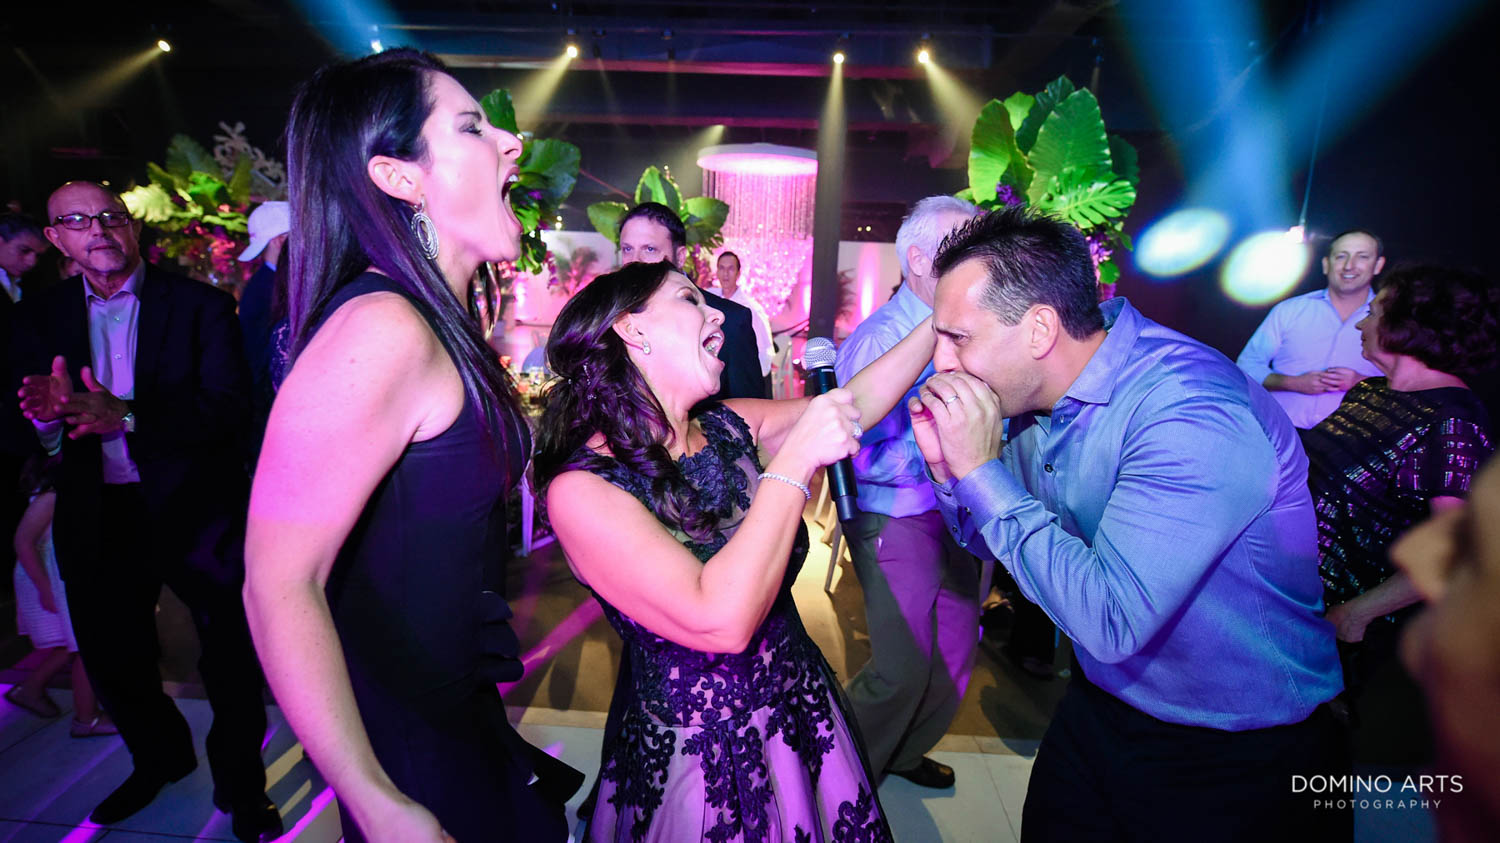 Fun party pictures with Rock With U at Gallery of amazing things mitzvah